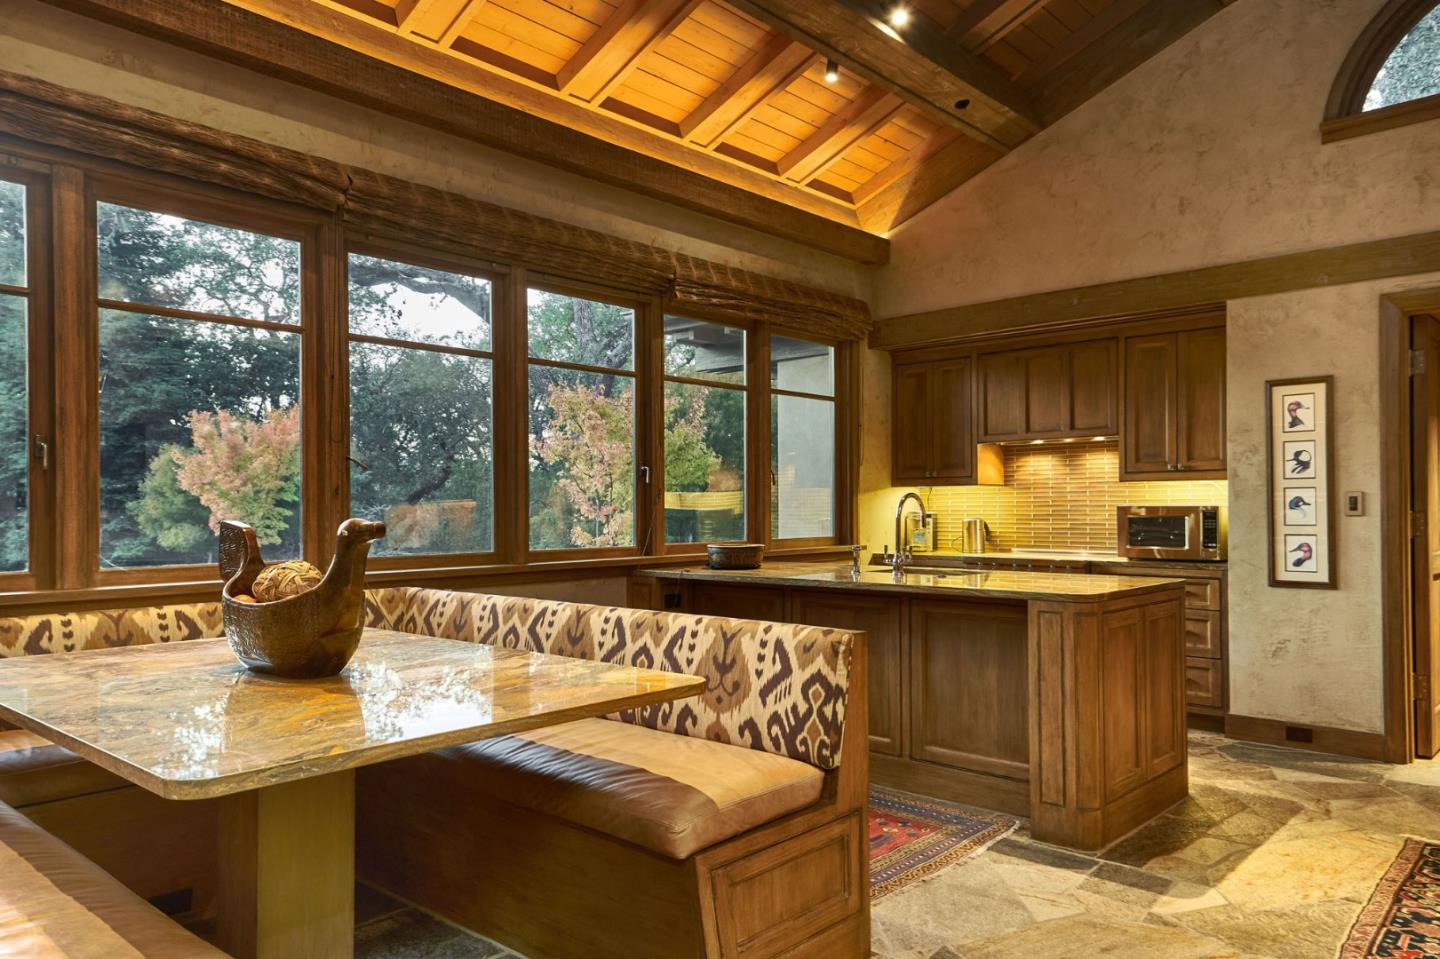 485 Whiskey Hill RD, WOODSIDE, California 94062, 9 Bedrooms Bedrooms, ,11 BathroomsBathrooms,Residential,For Sale,485 Whiskey Hill RD,ML81824533